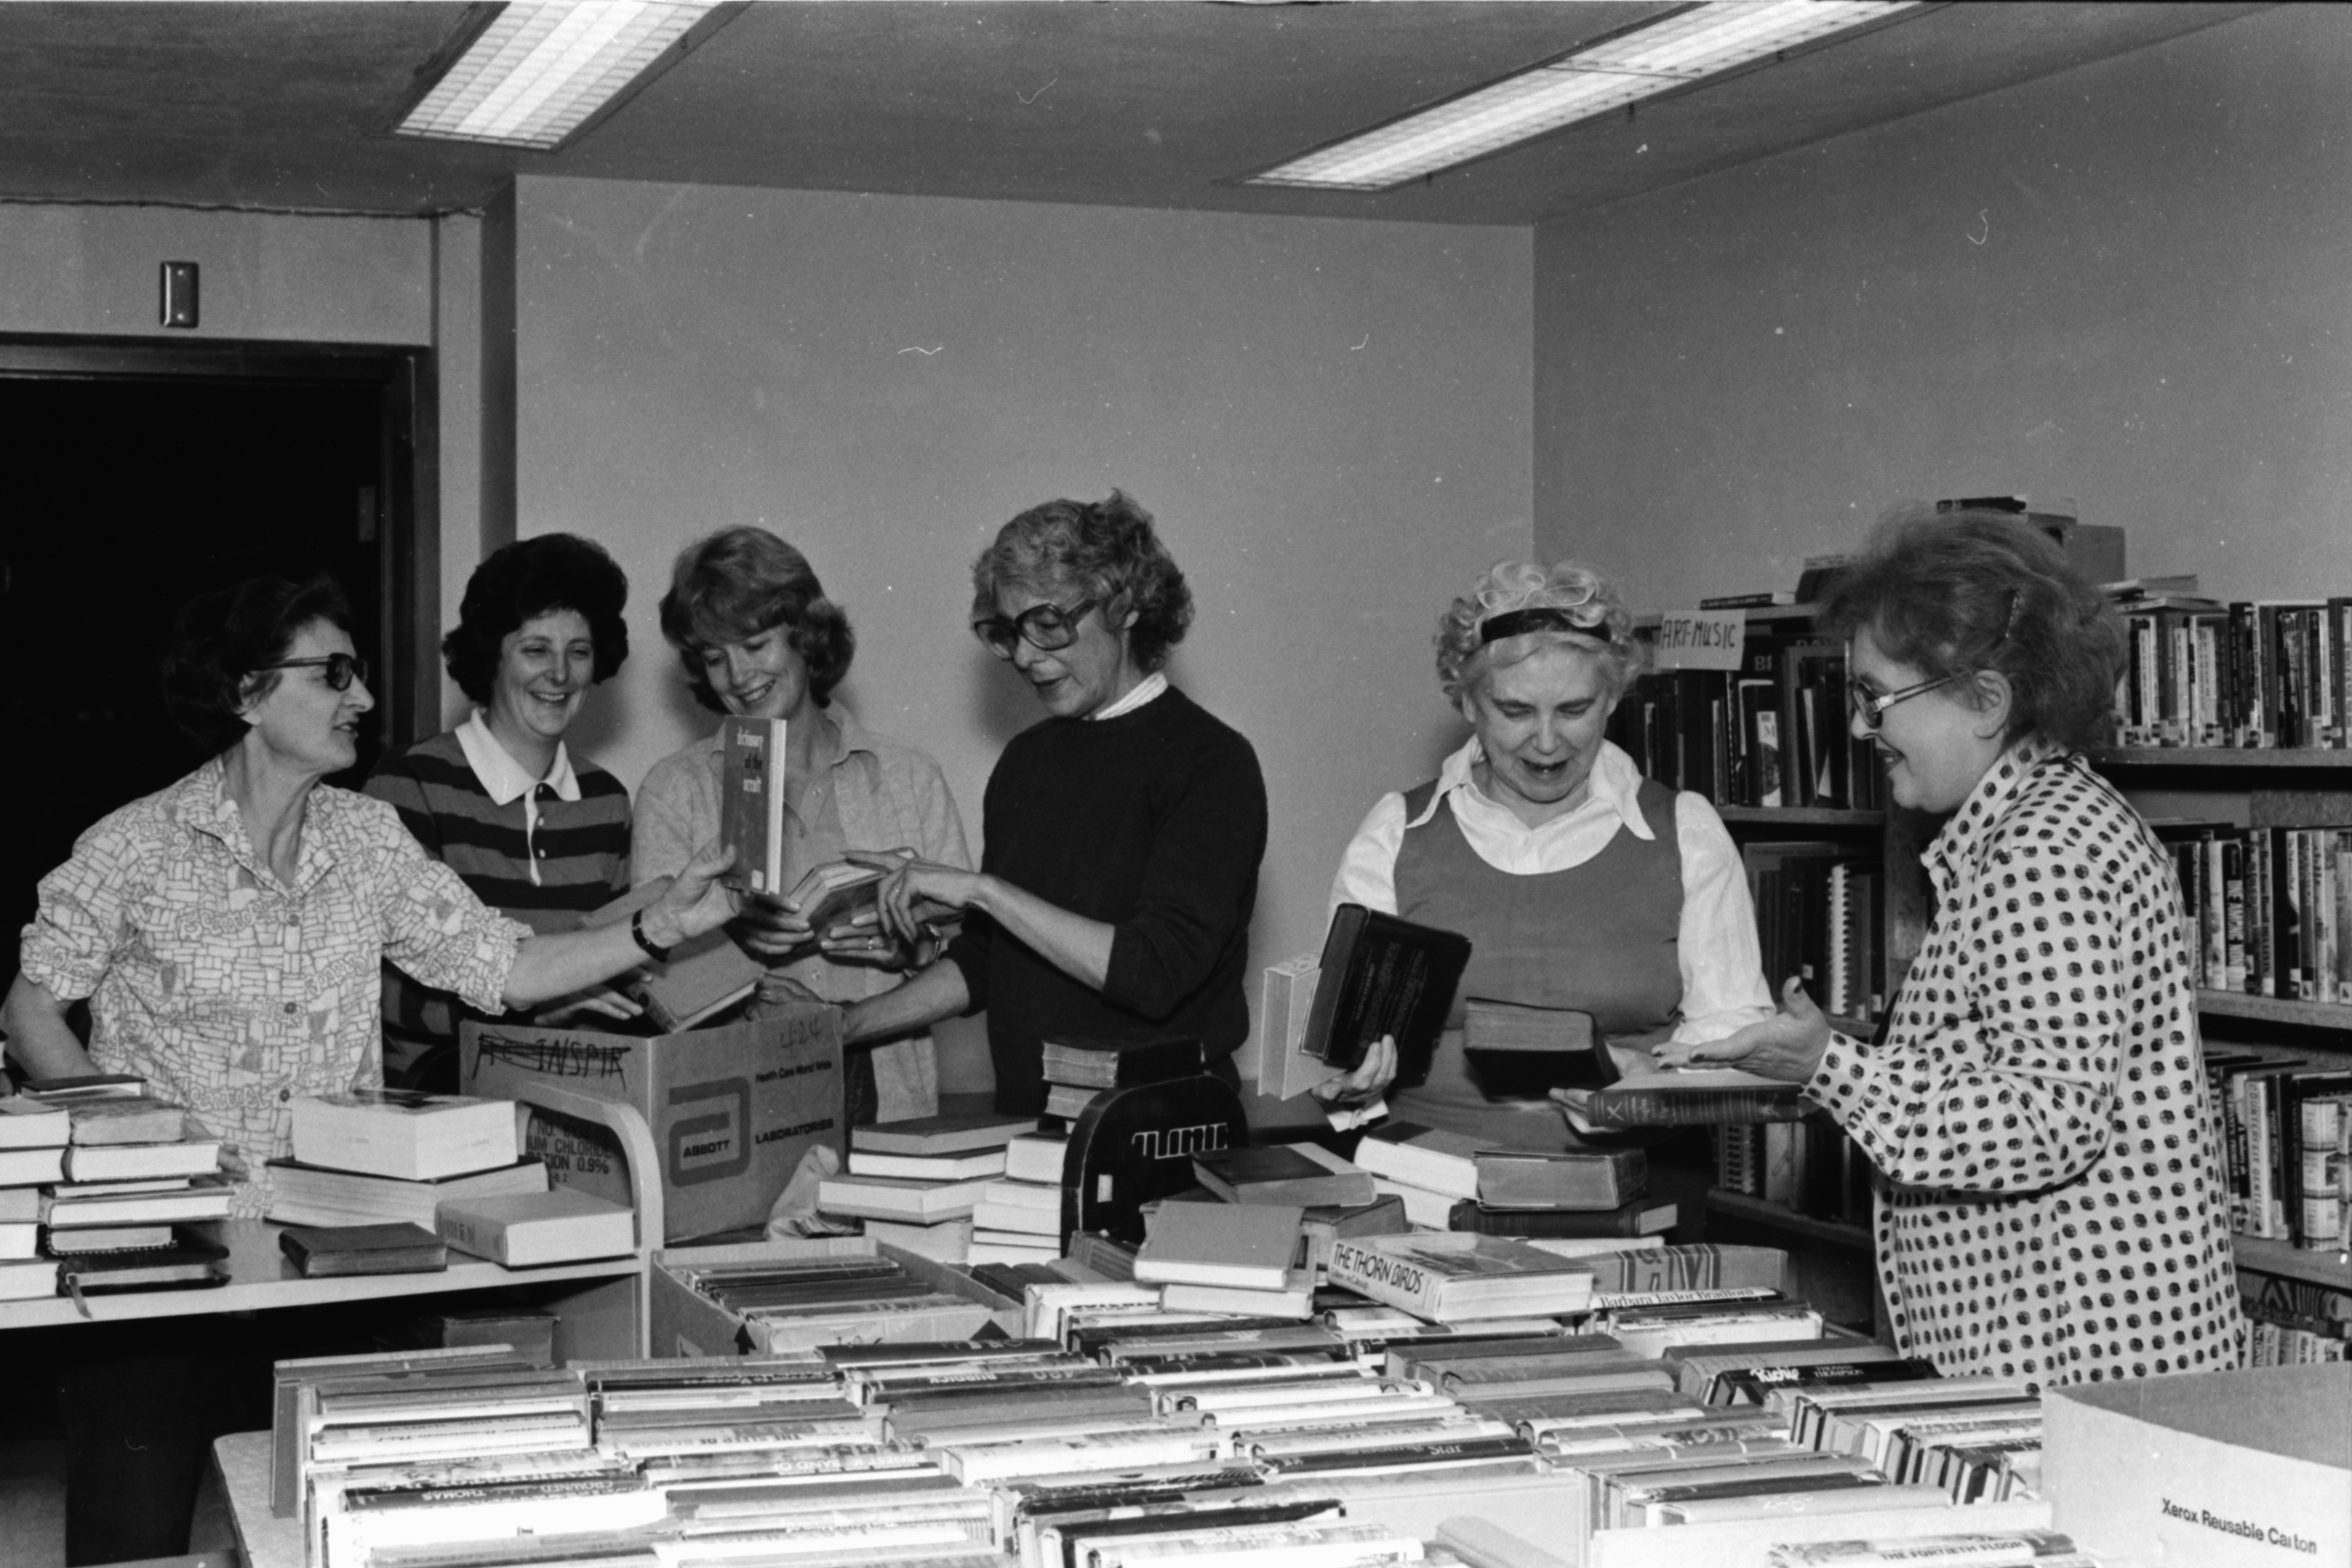 Getting ready for the book sale, November 1979 image